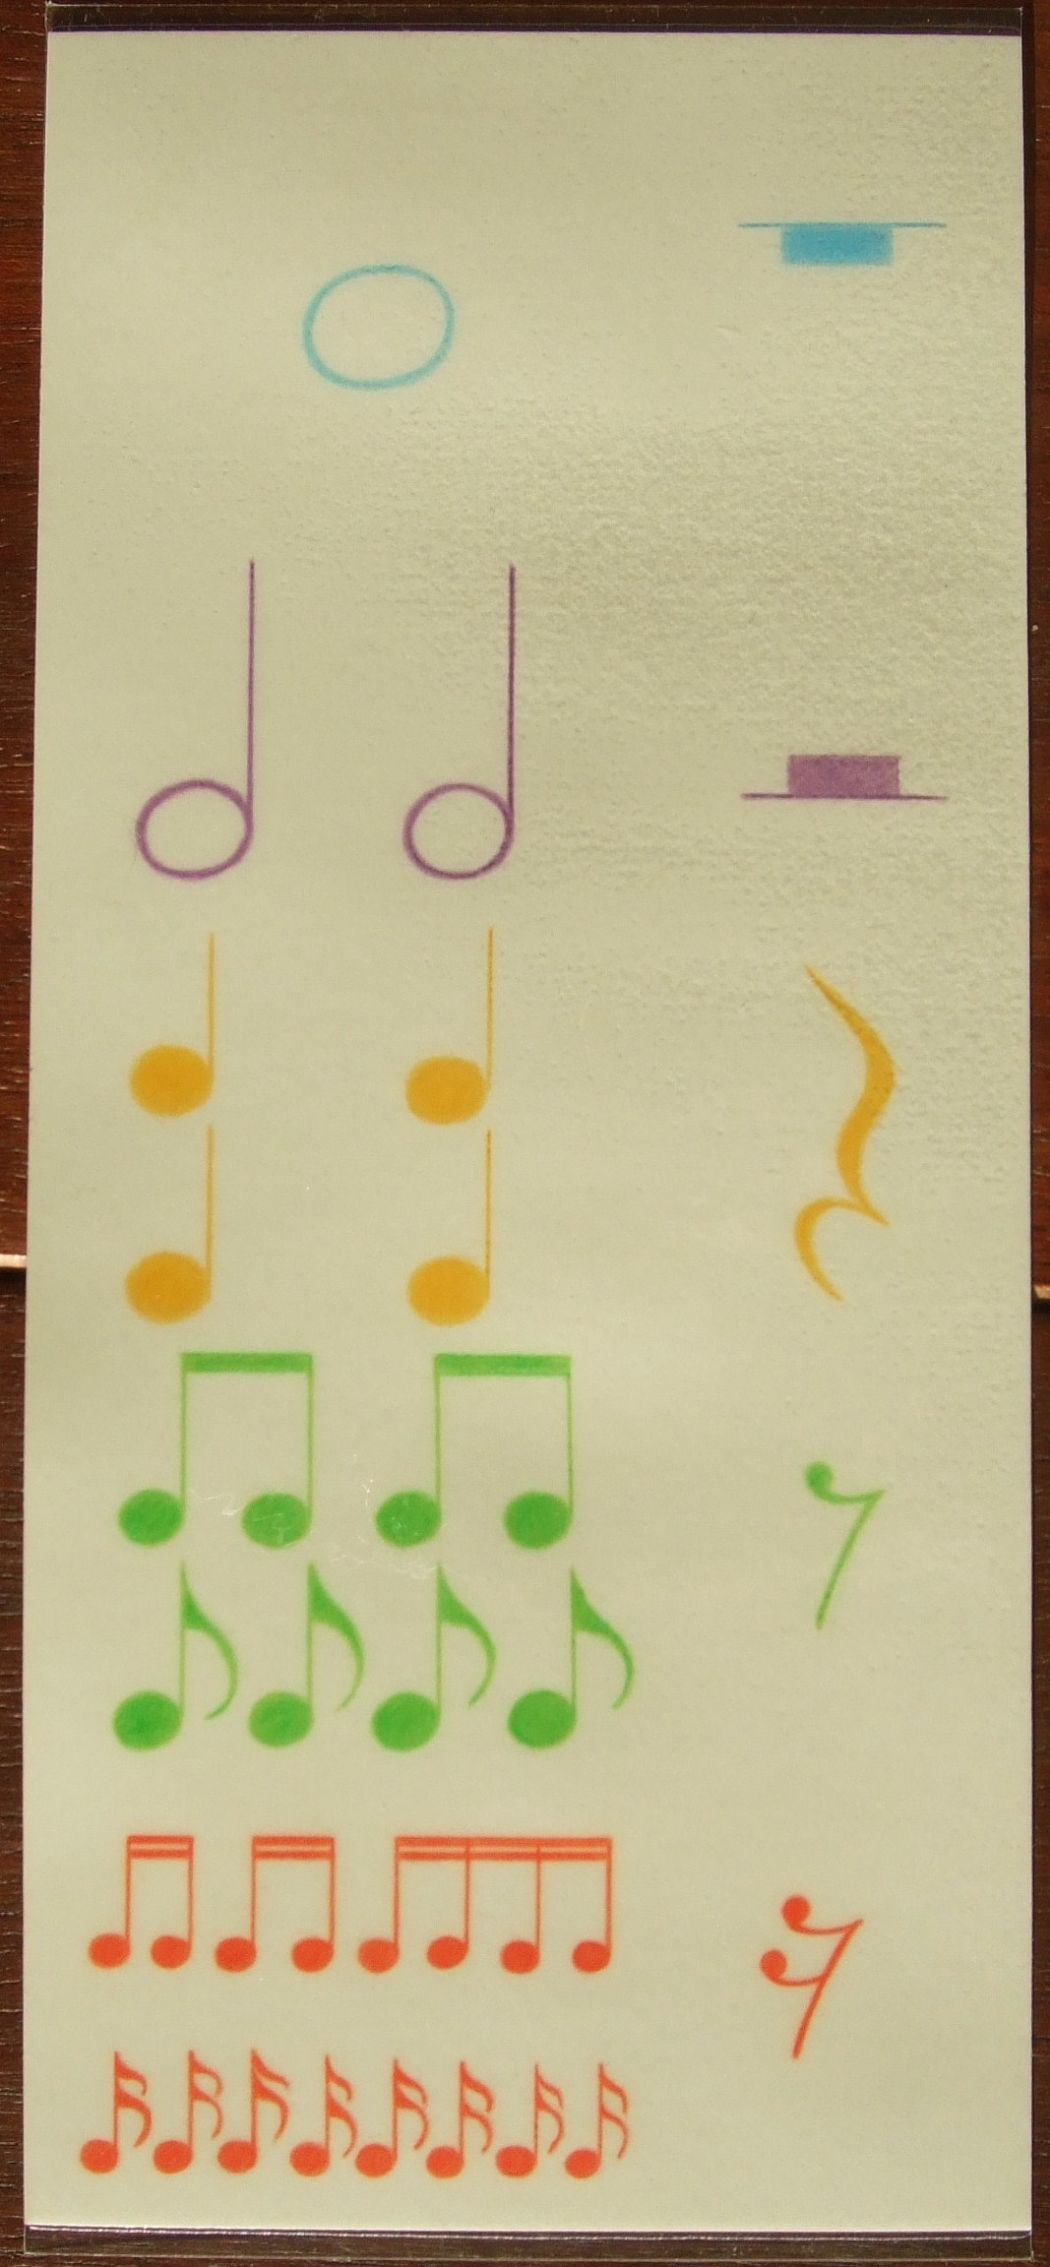 photo, teaching materials, whole, half, quarter and eighth notes and rests